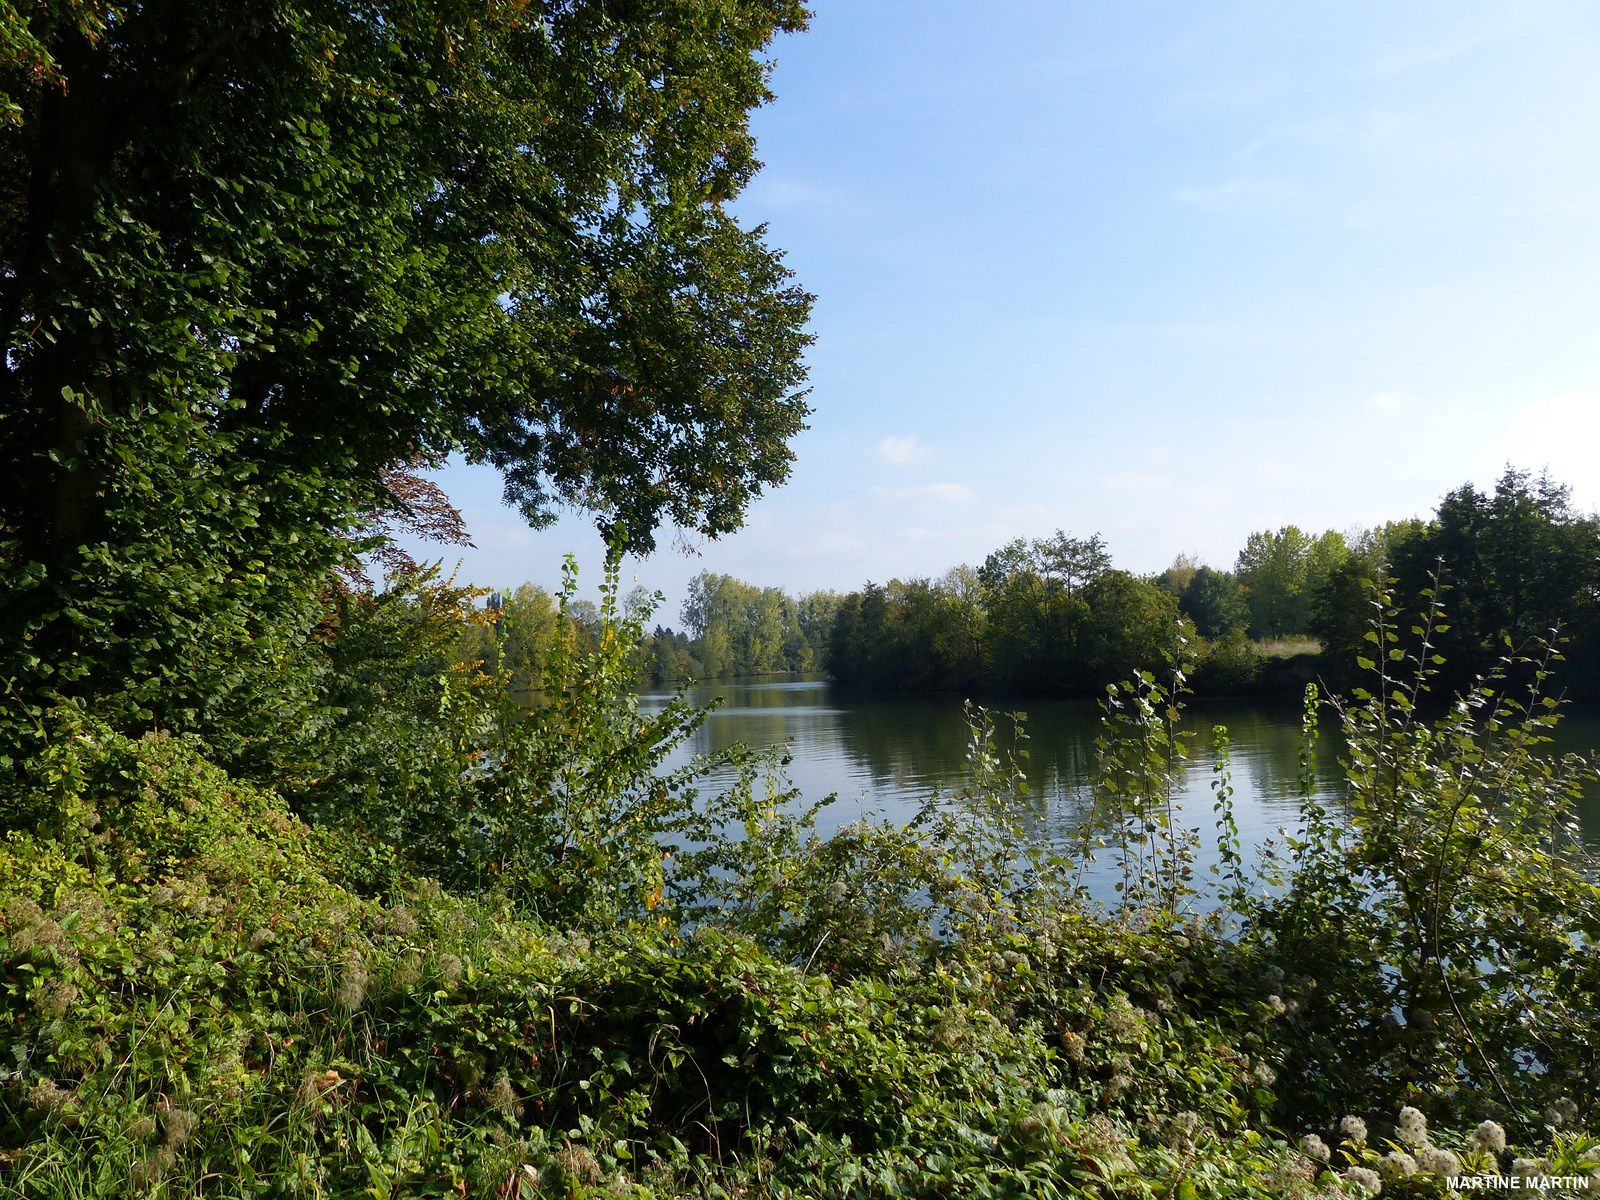 Les bords d'Oise à Cergy